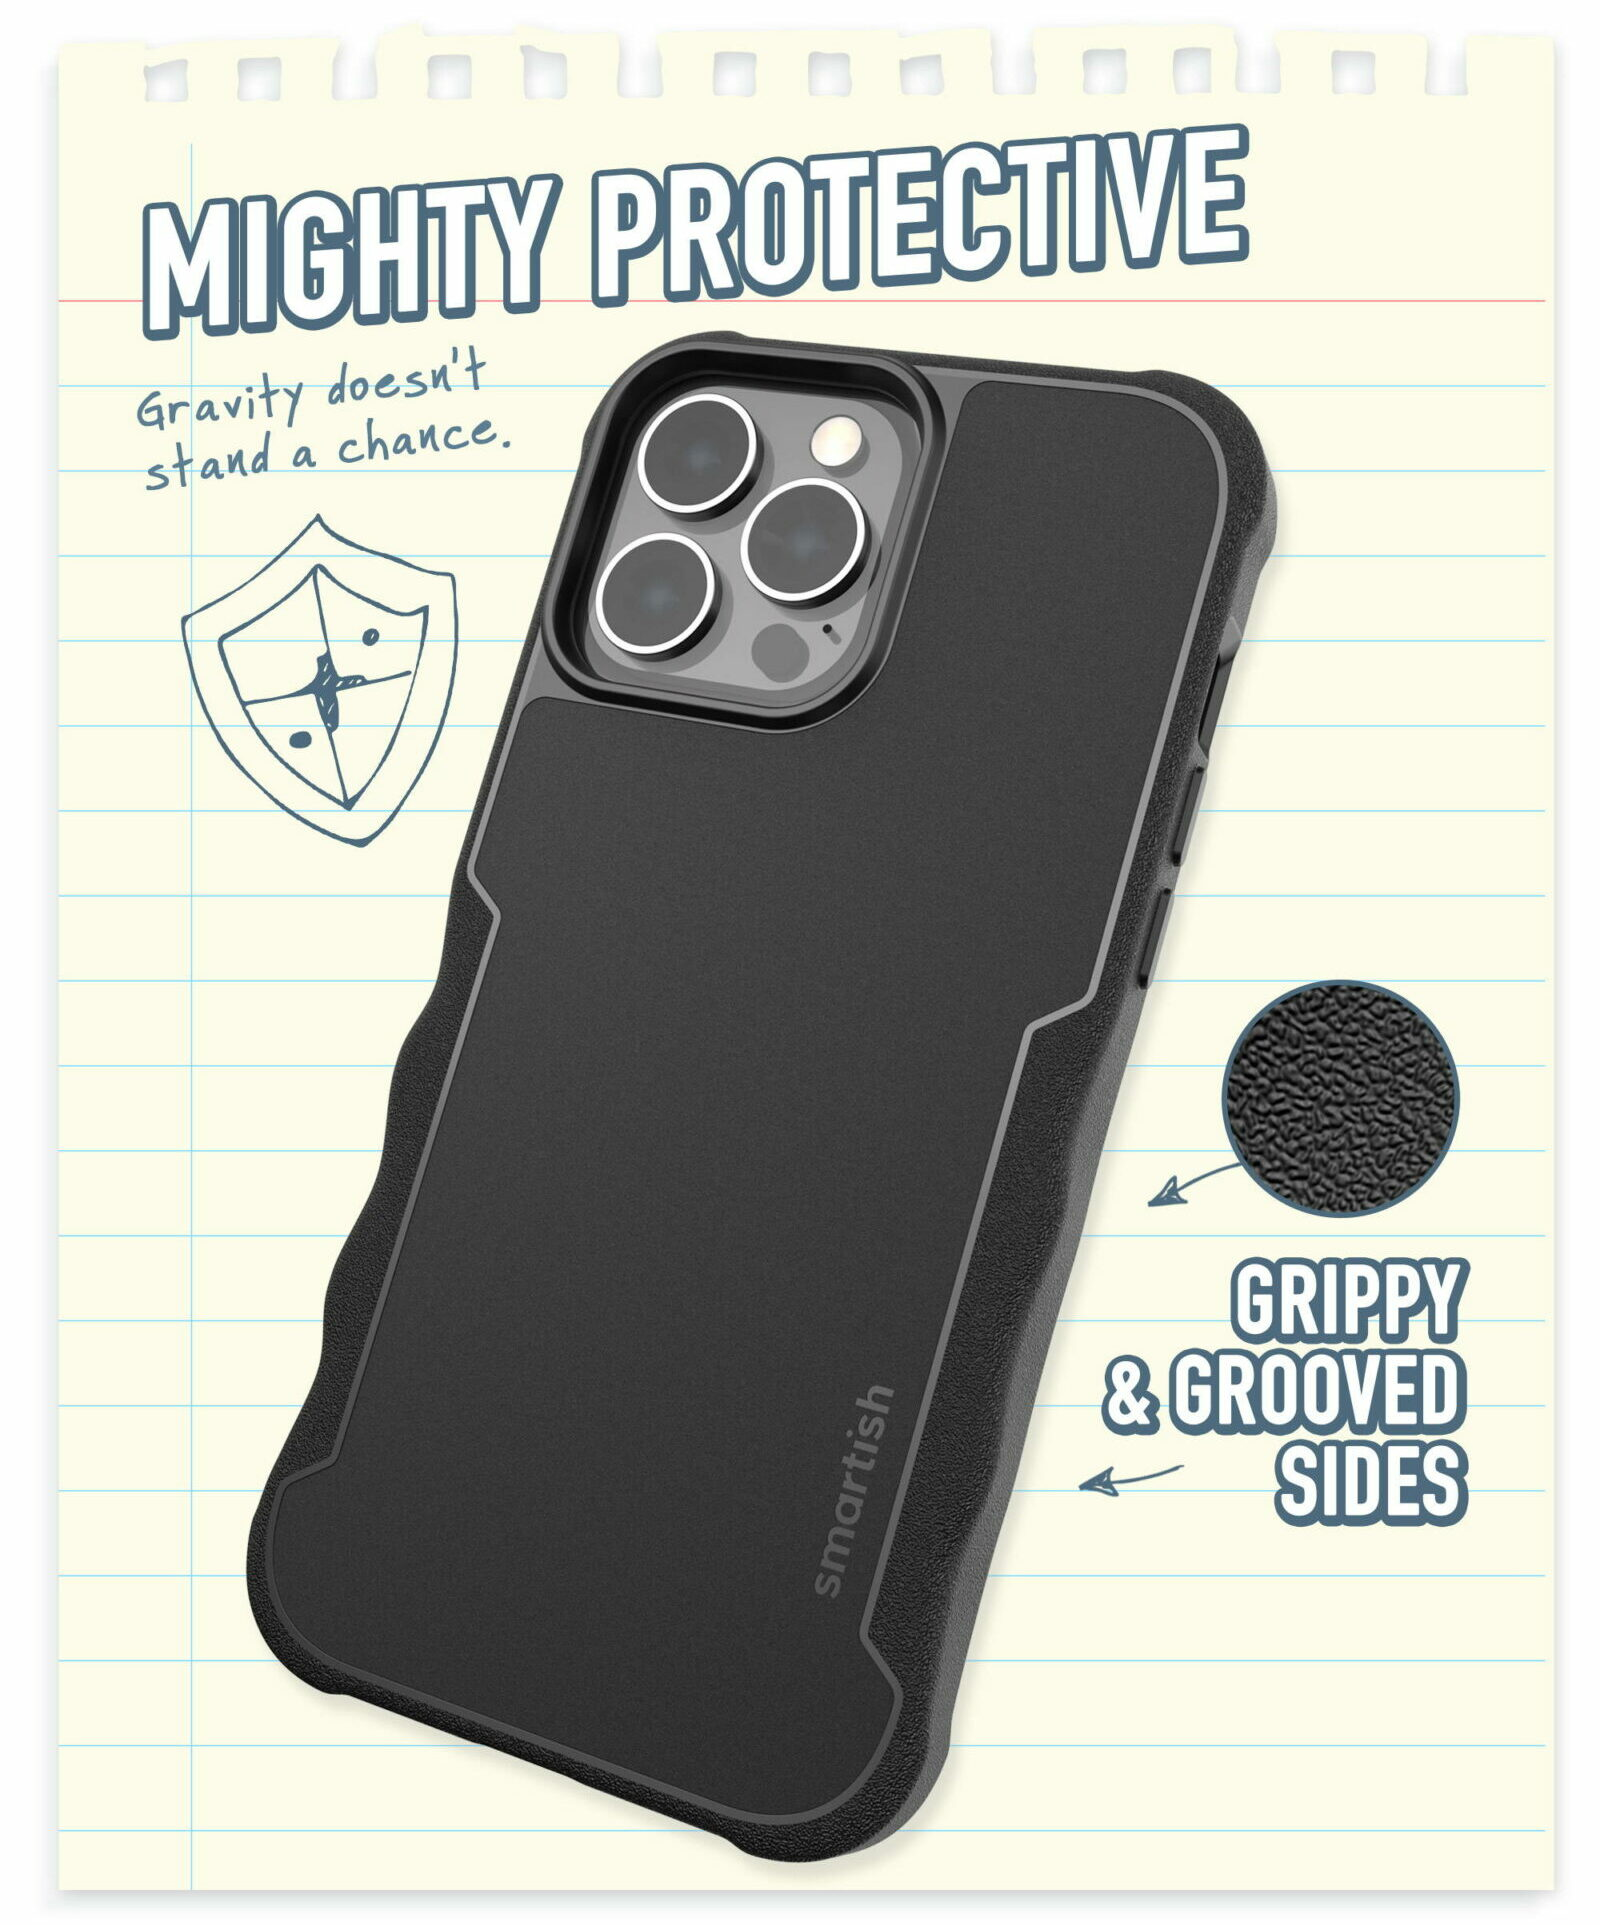 Gripzilla with MagSafe Armor iPhone 13 case giveaway: Grooved textured sides make this case ultra grippy.